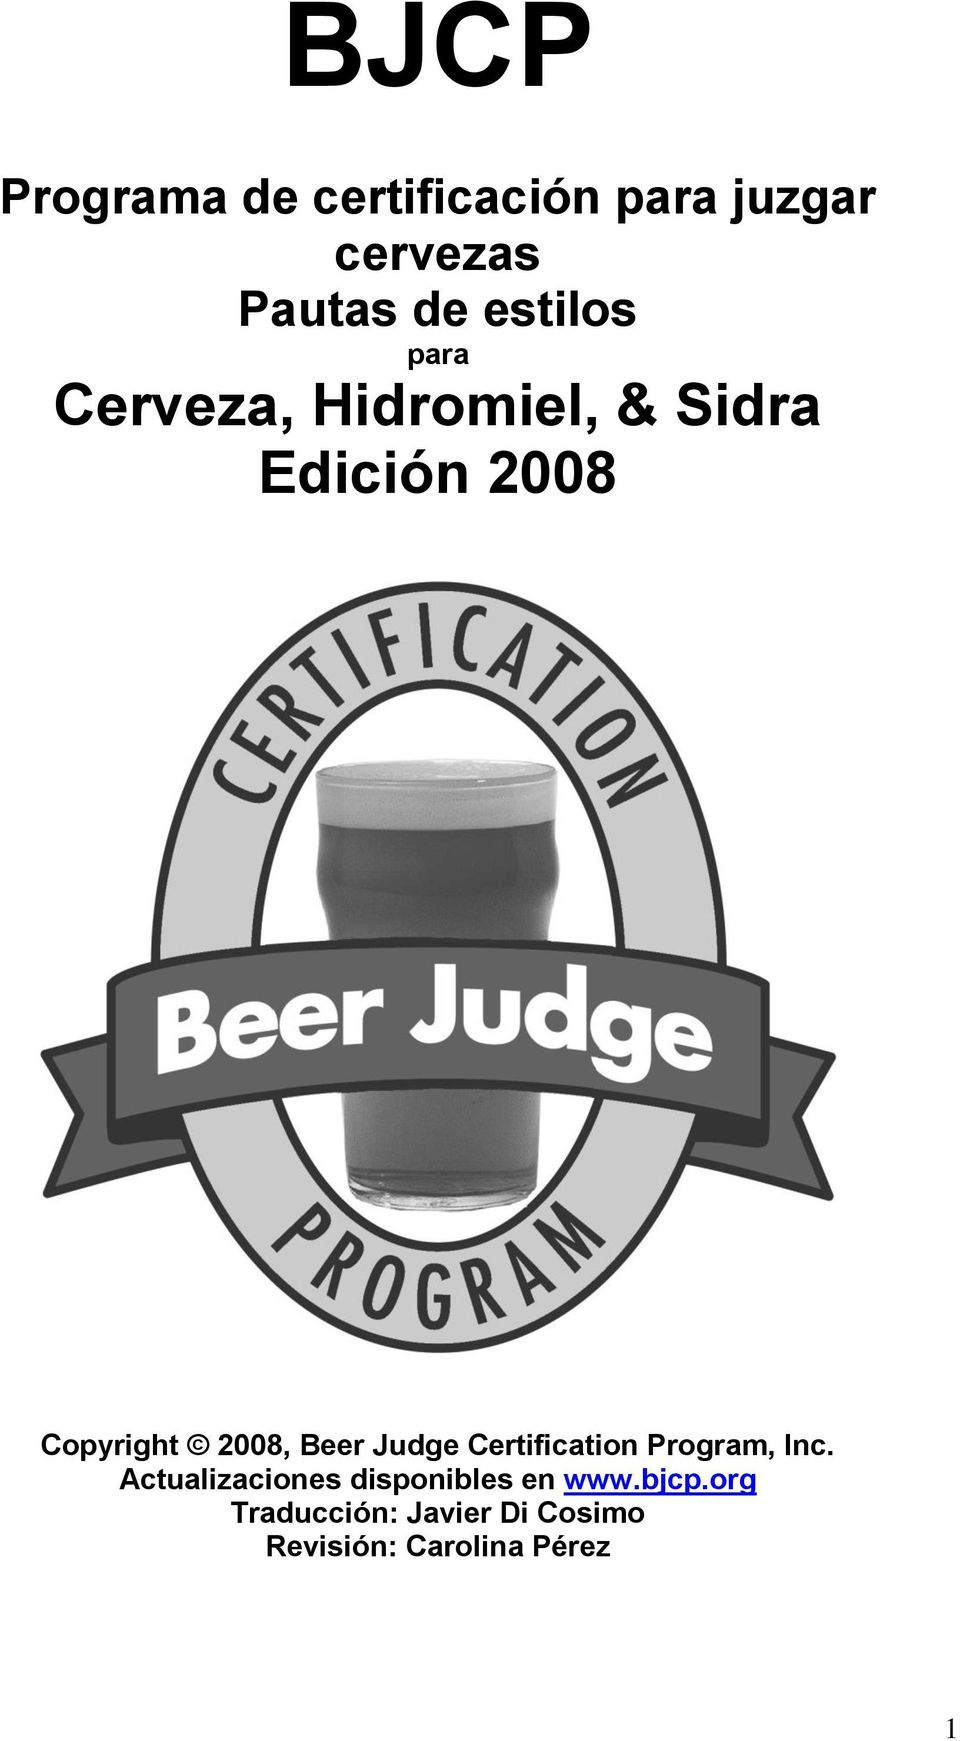 2008, Beer Judge Certification Program, Inc.